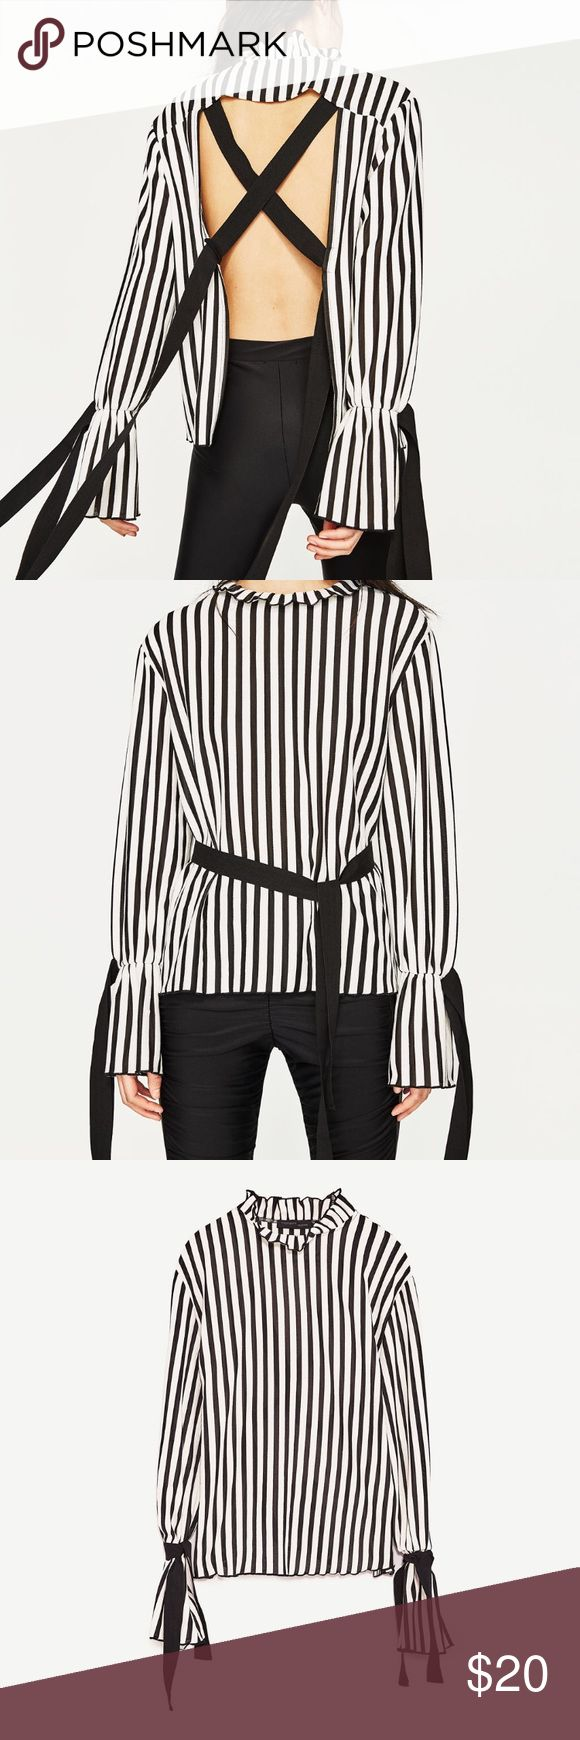 Zara top Open back top with ties in the back. Bell sleeves with top. This top is perfect for holiday parties. Zara Tops Blouses